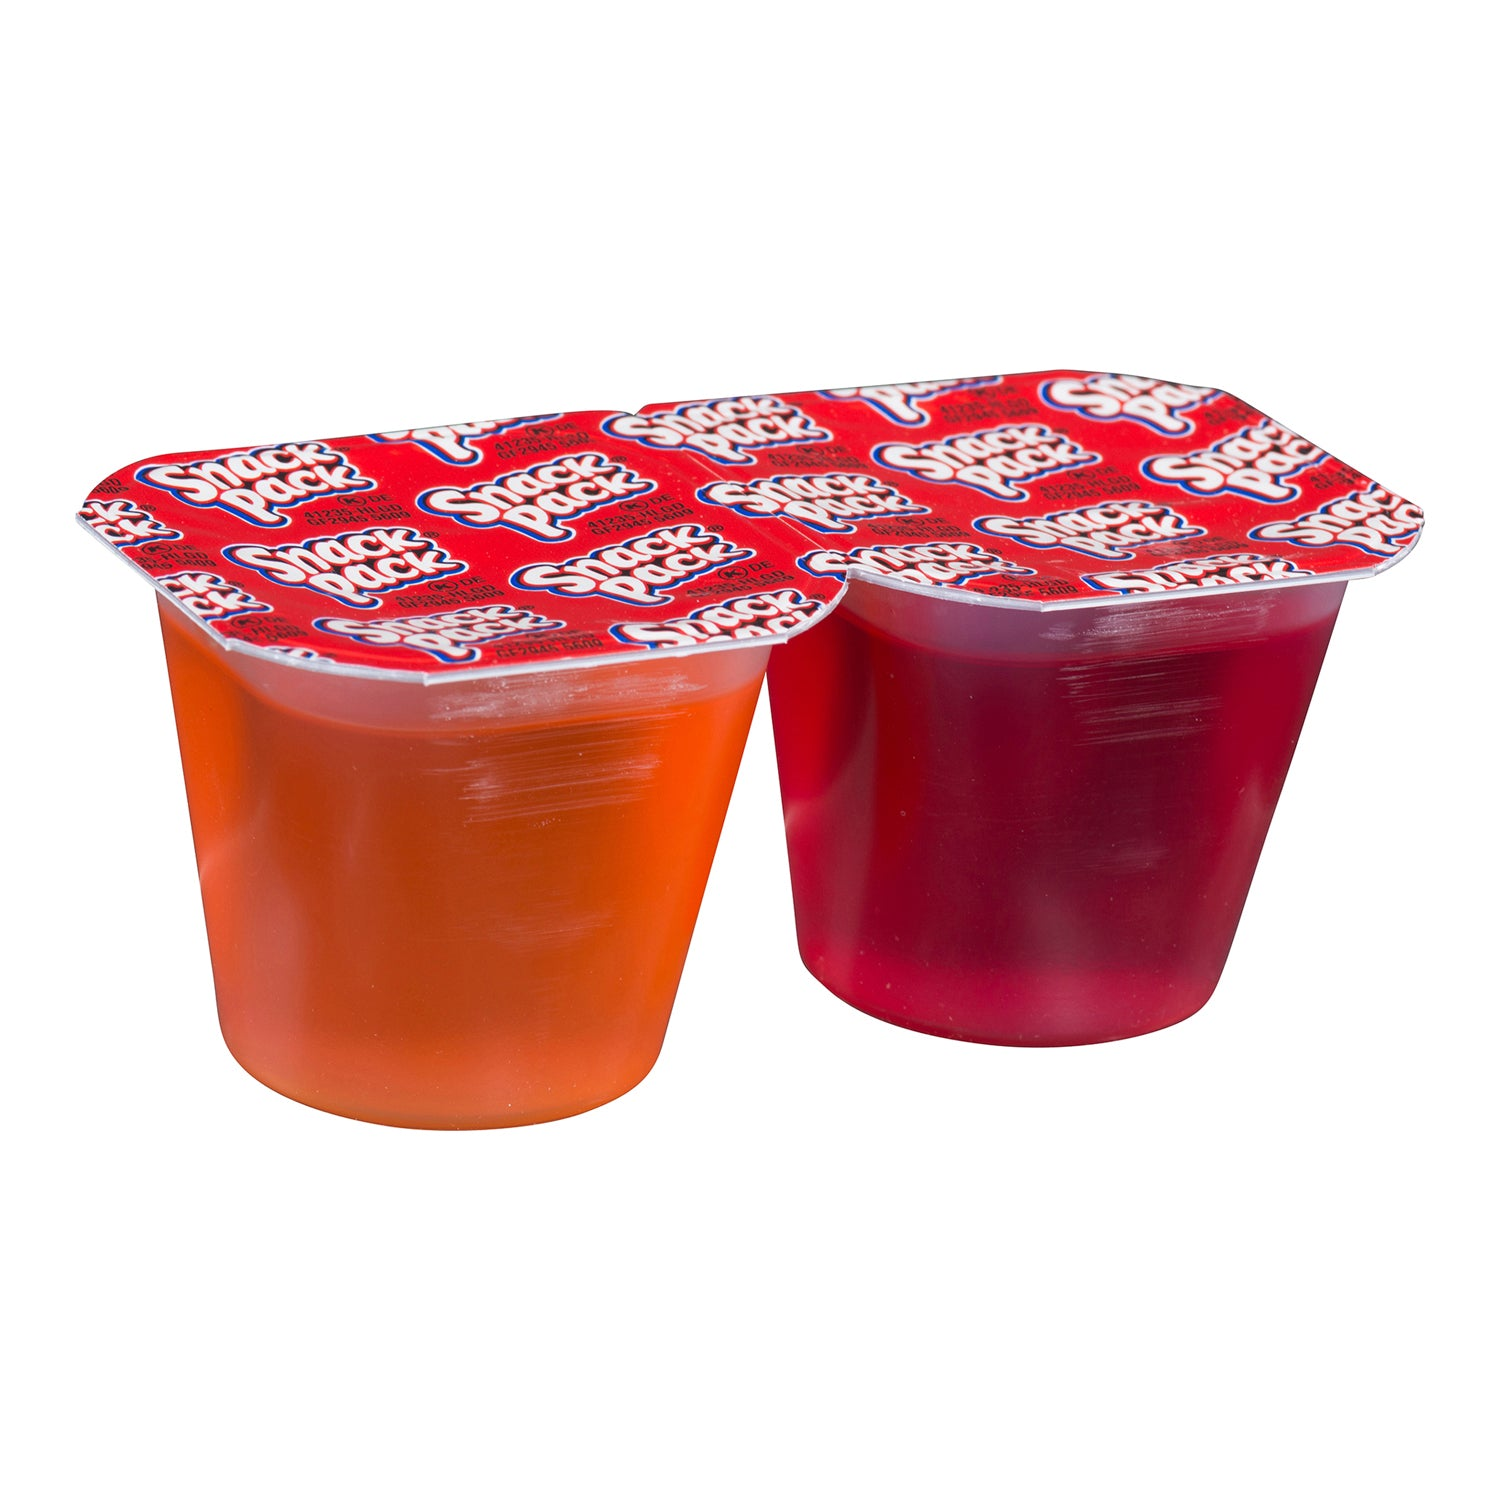 Hunt's Strawberry/Orange Gelatin Cups - 48 Pack [$0.58/cup]